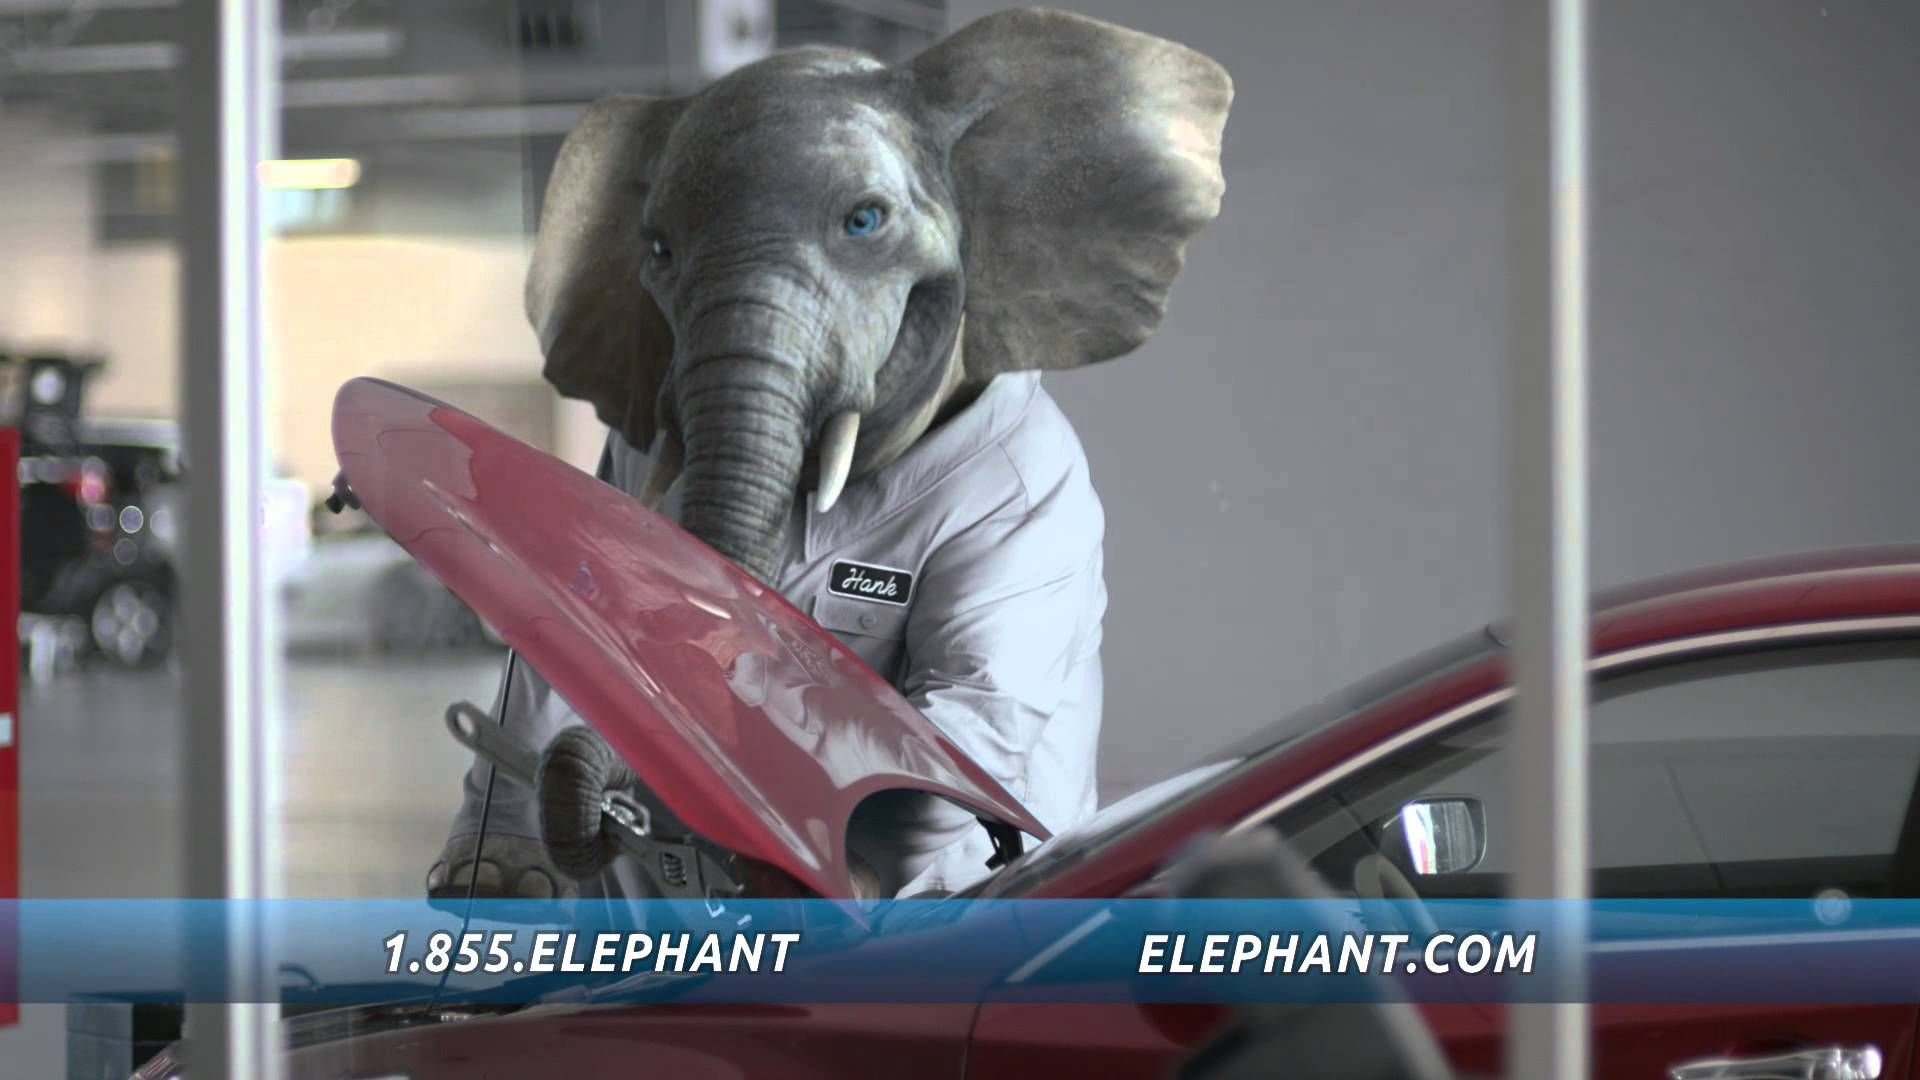 Elephant Auto Insurance Quote Prepossessing This Elephant Insurance Commercial Was Shot In The Allsteel Dallas